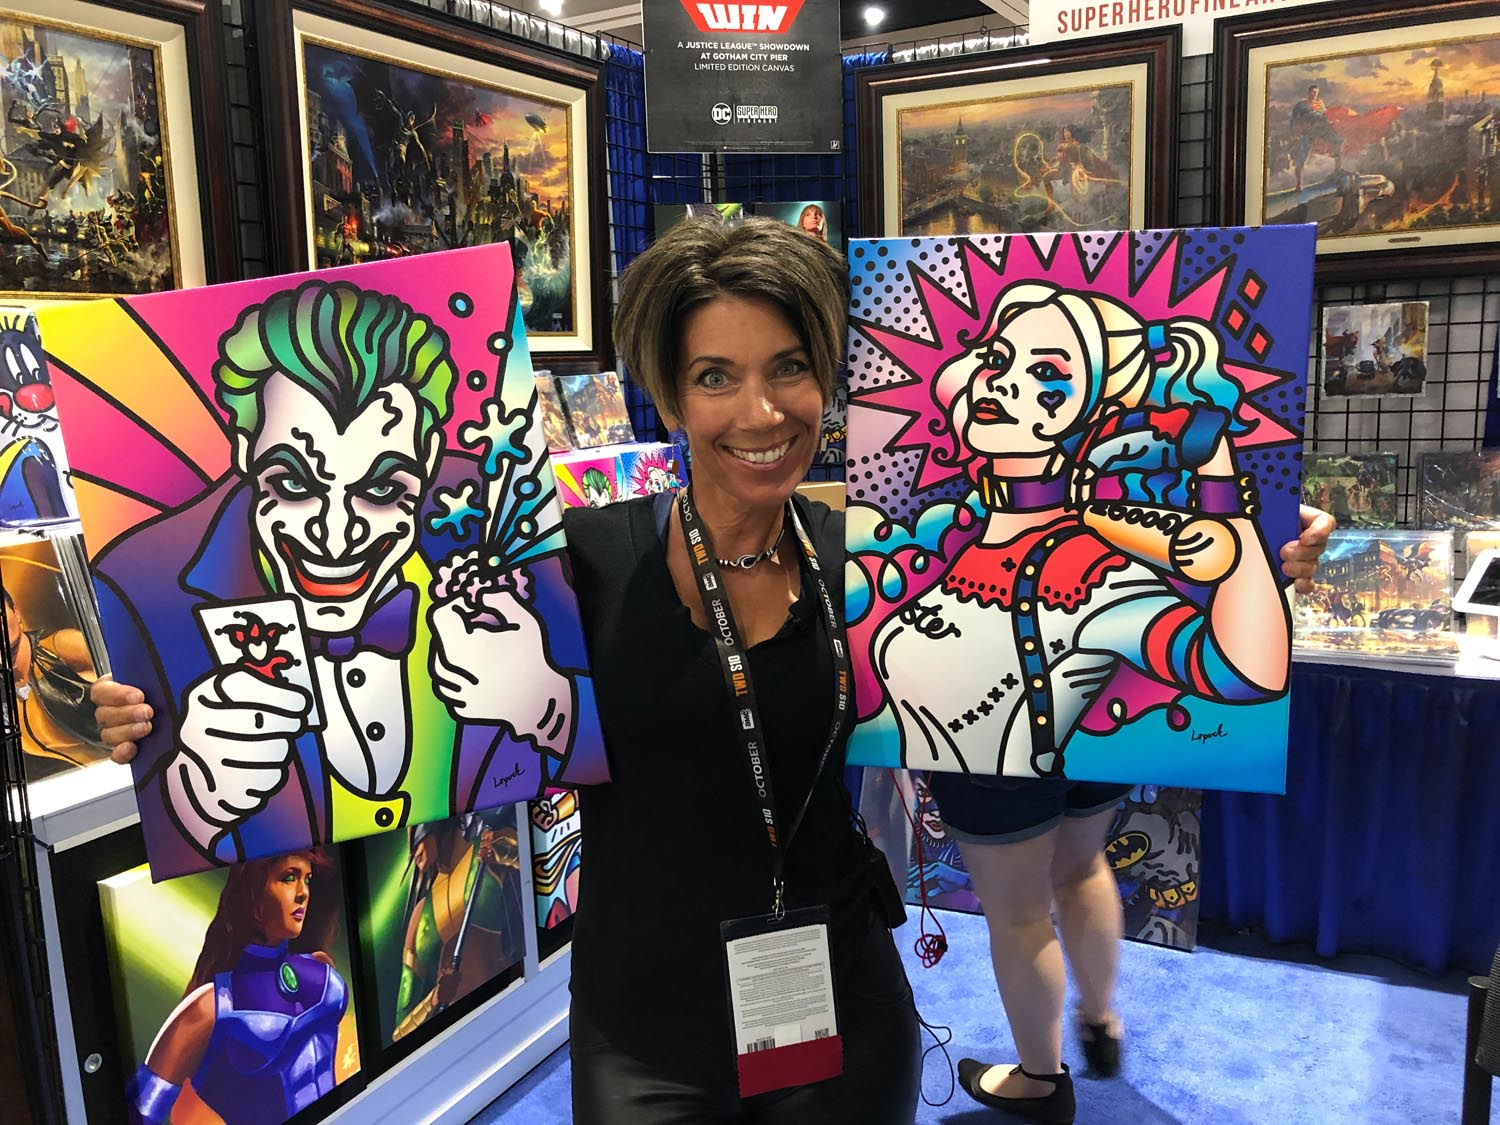 Thank You Sdcc 2019 Attendees And Fans Superherofineart Com